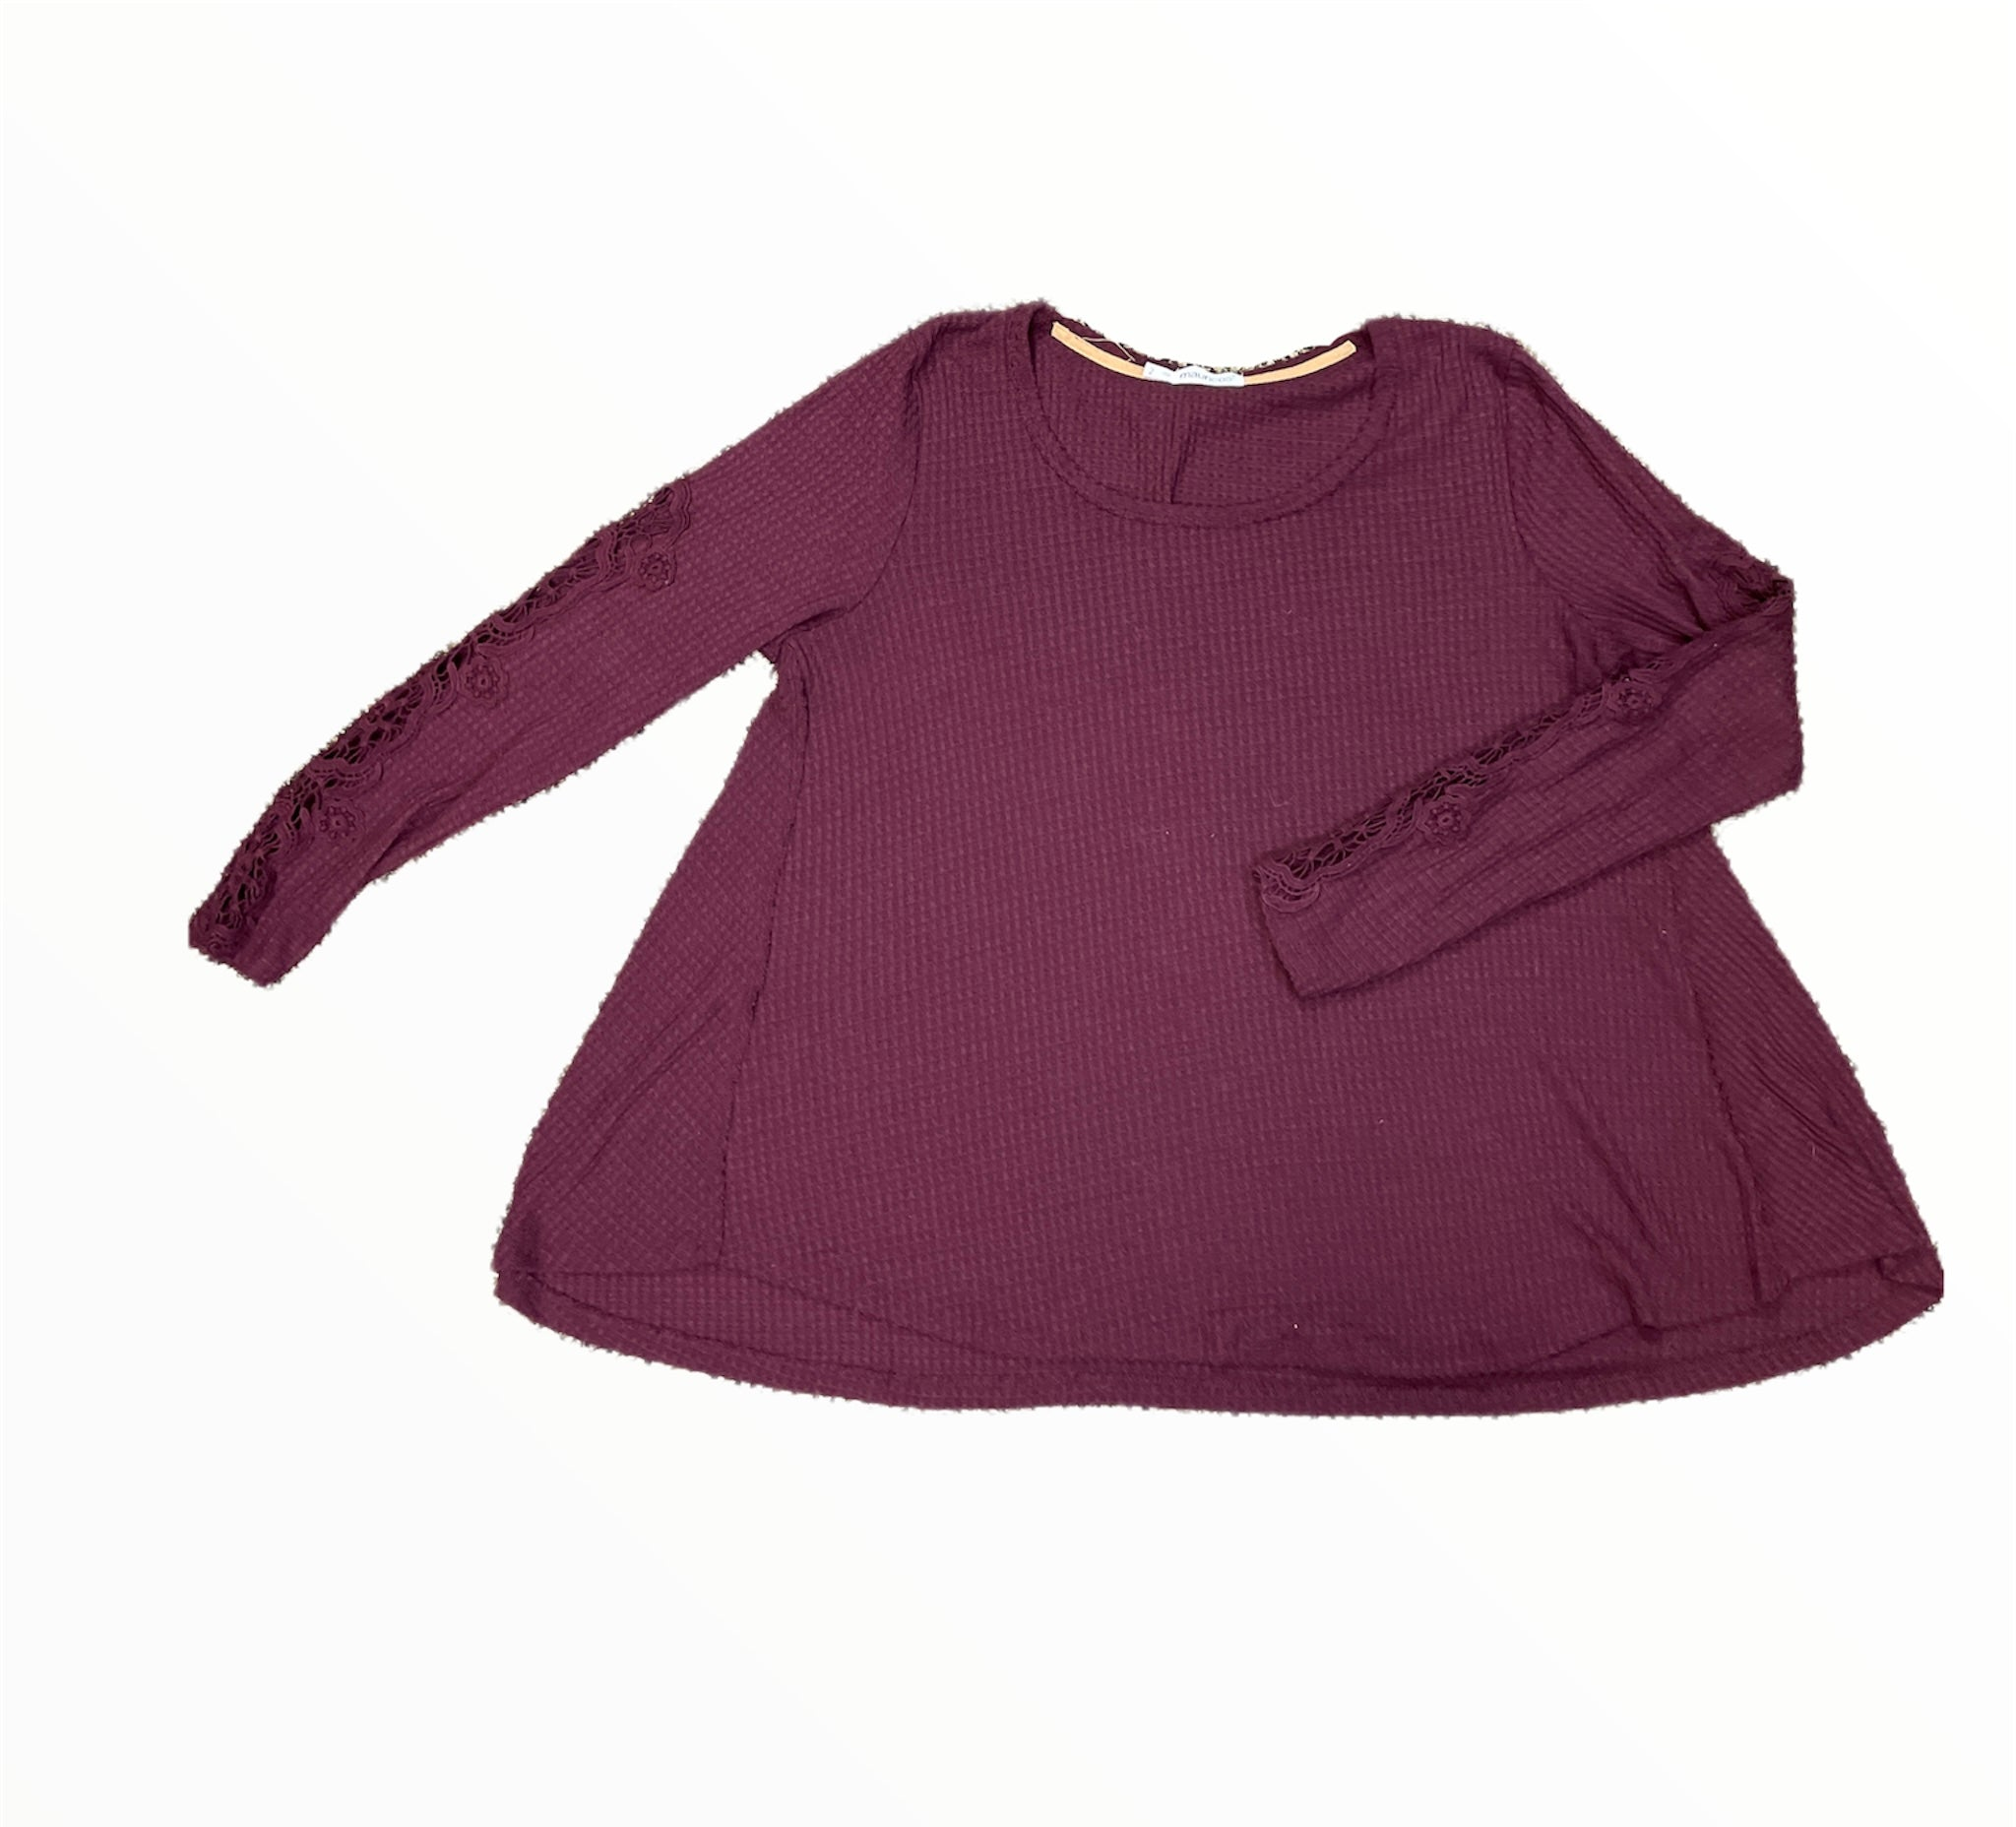 Primary Photo - BRAND: MAURICES <BR>STYLE: TOP LONG SLEEVE <BR>COLOR: MAROON <BR>SIZE: 2X <BR>SKU: 223-22361-21845